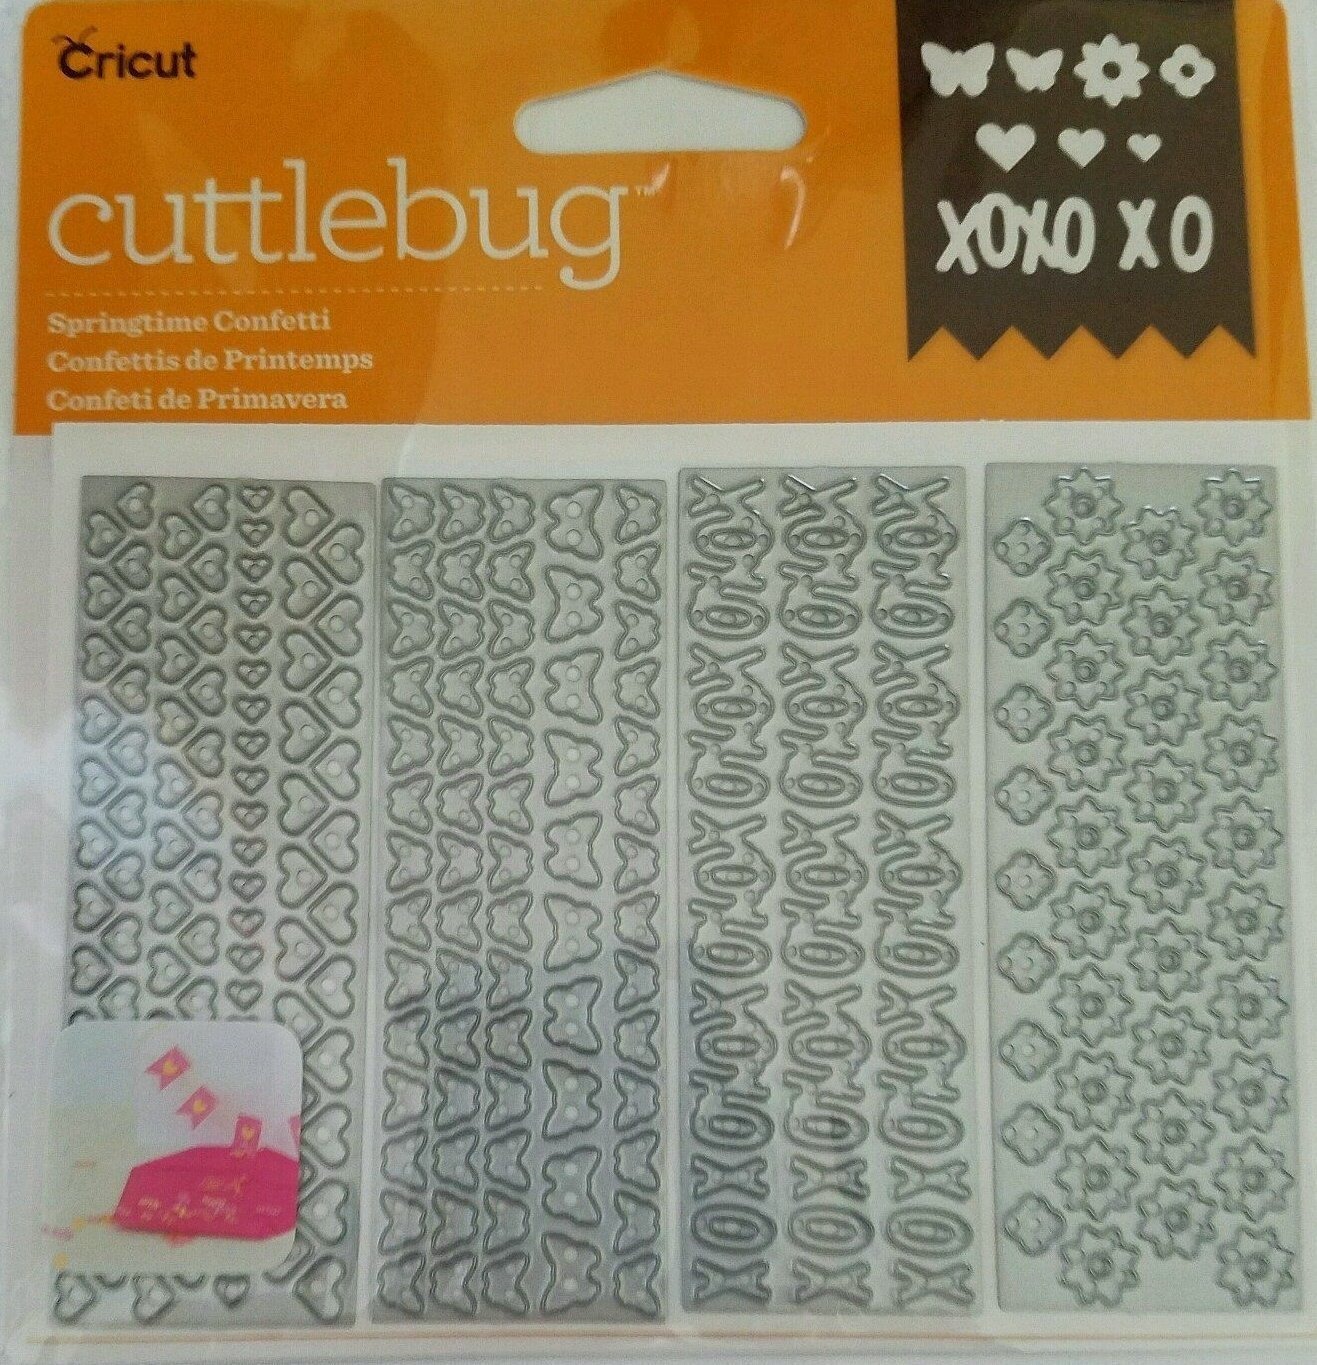 Cricut Springtime Confetti 4 assorted Cut & Emboss Dies, Cuts and embosses a variety of materials By Cuttlebug